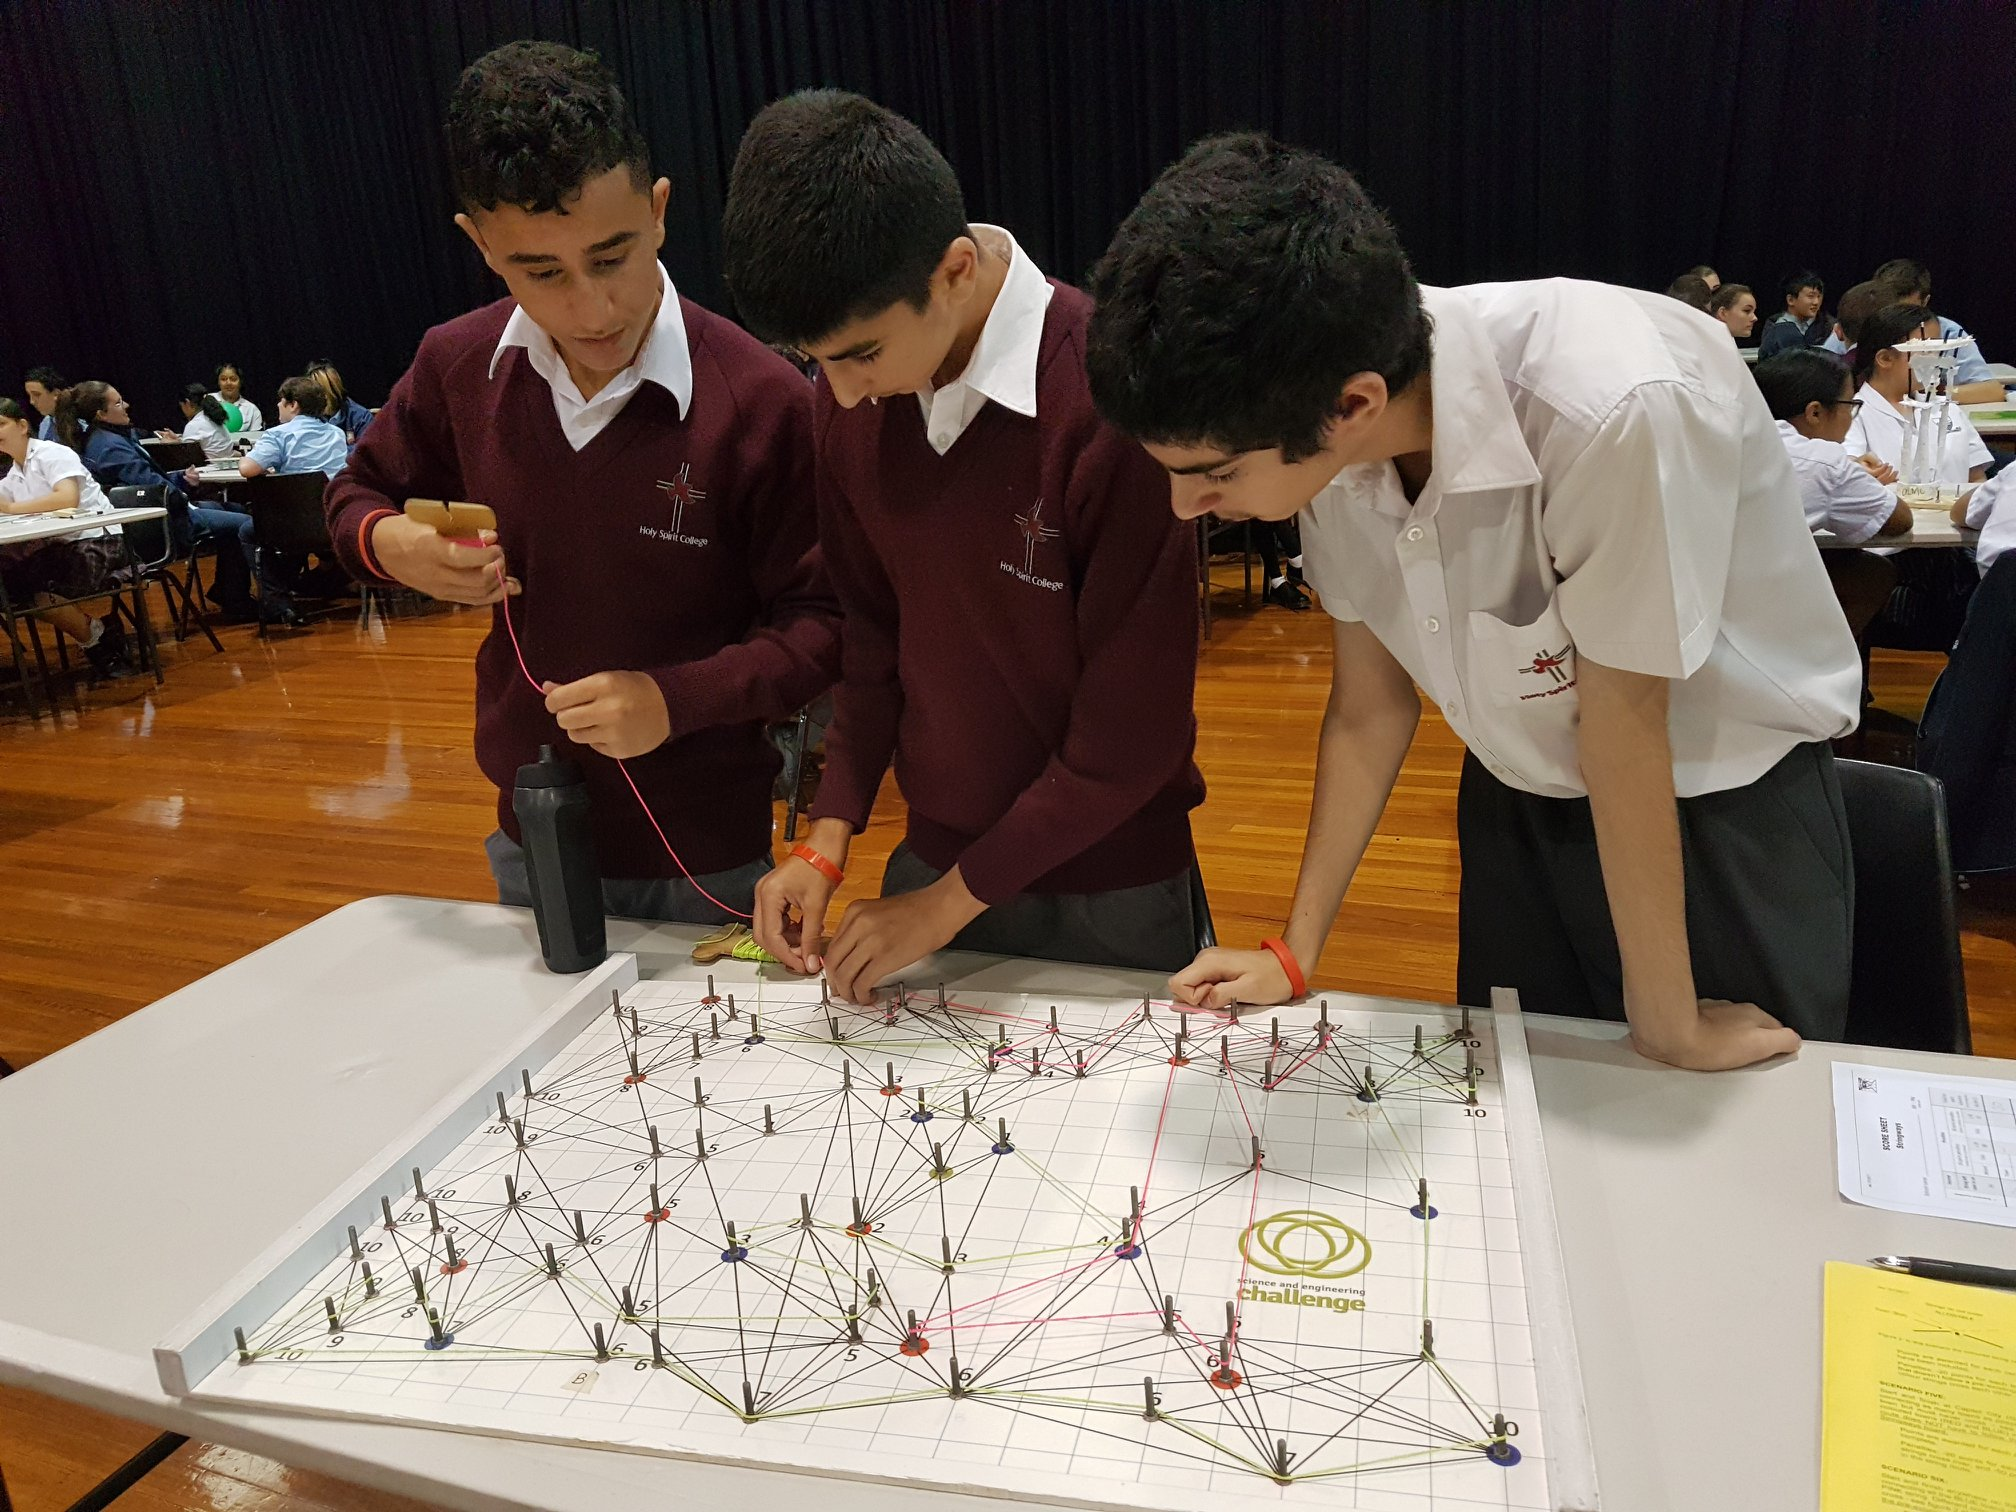 Students competing in the power grid event of the 2019 SEC